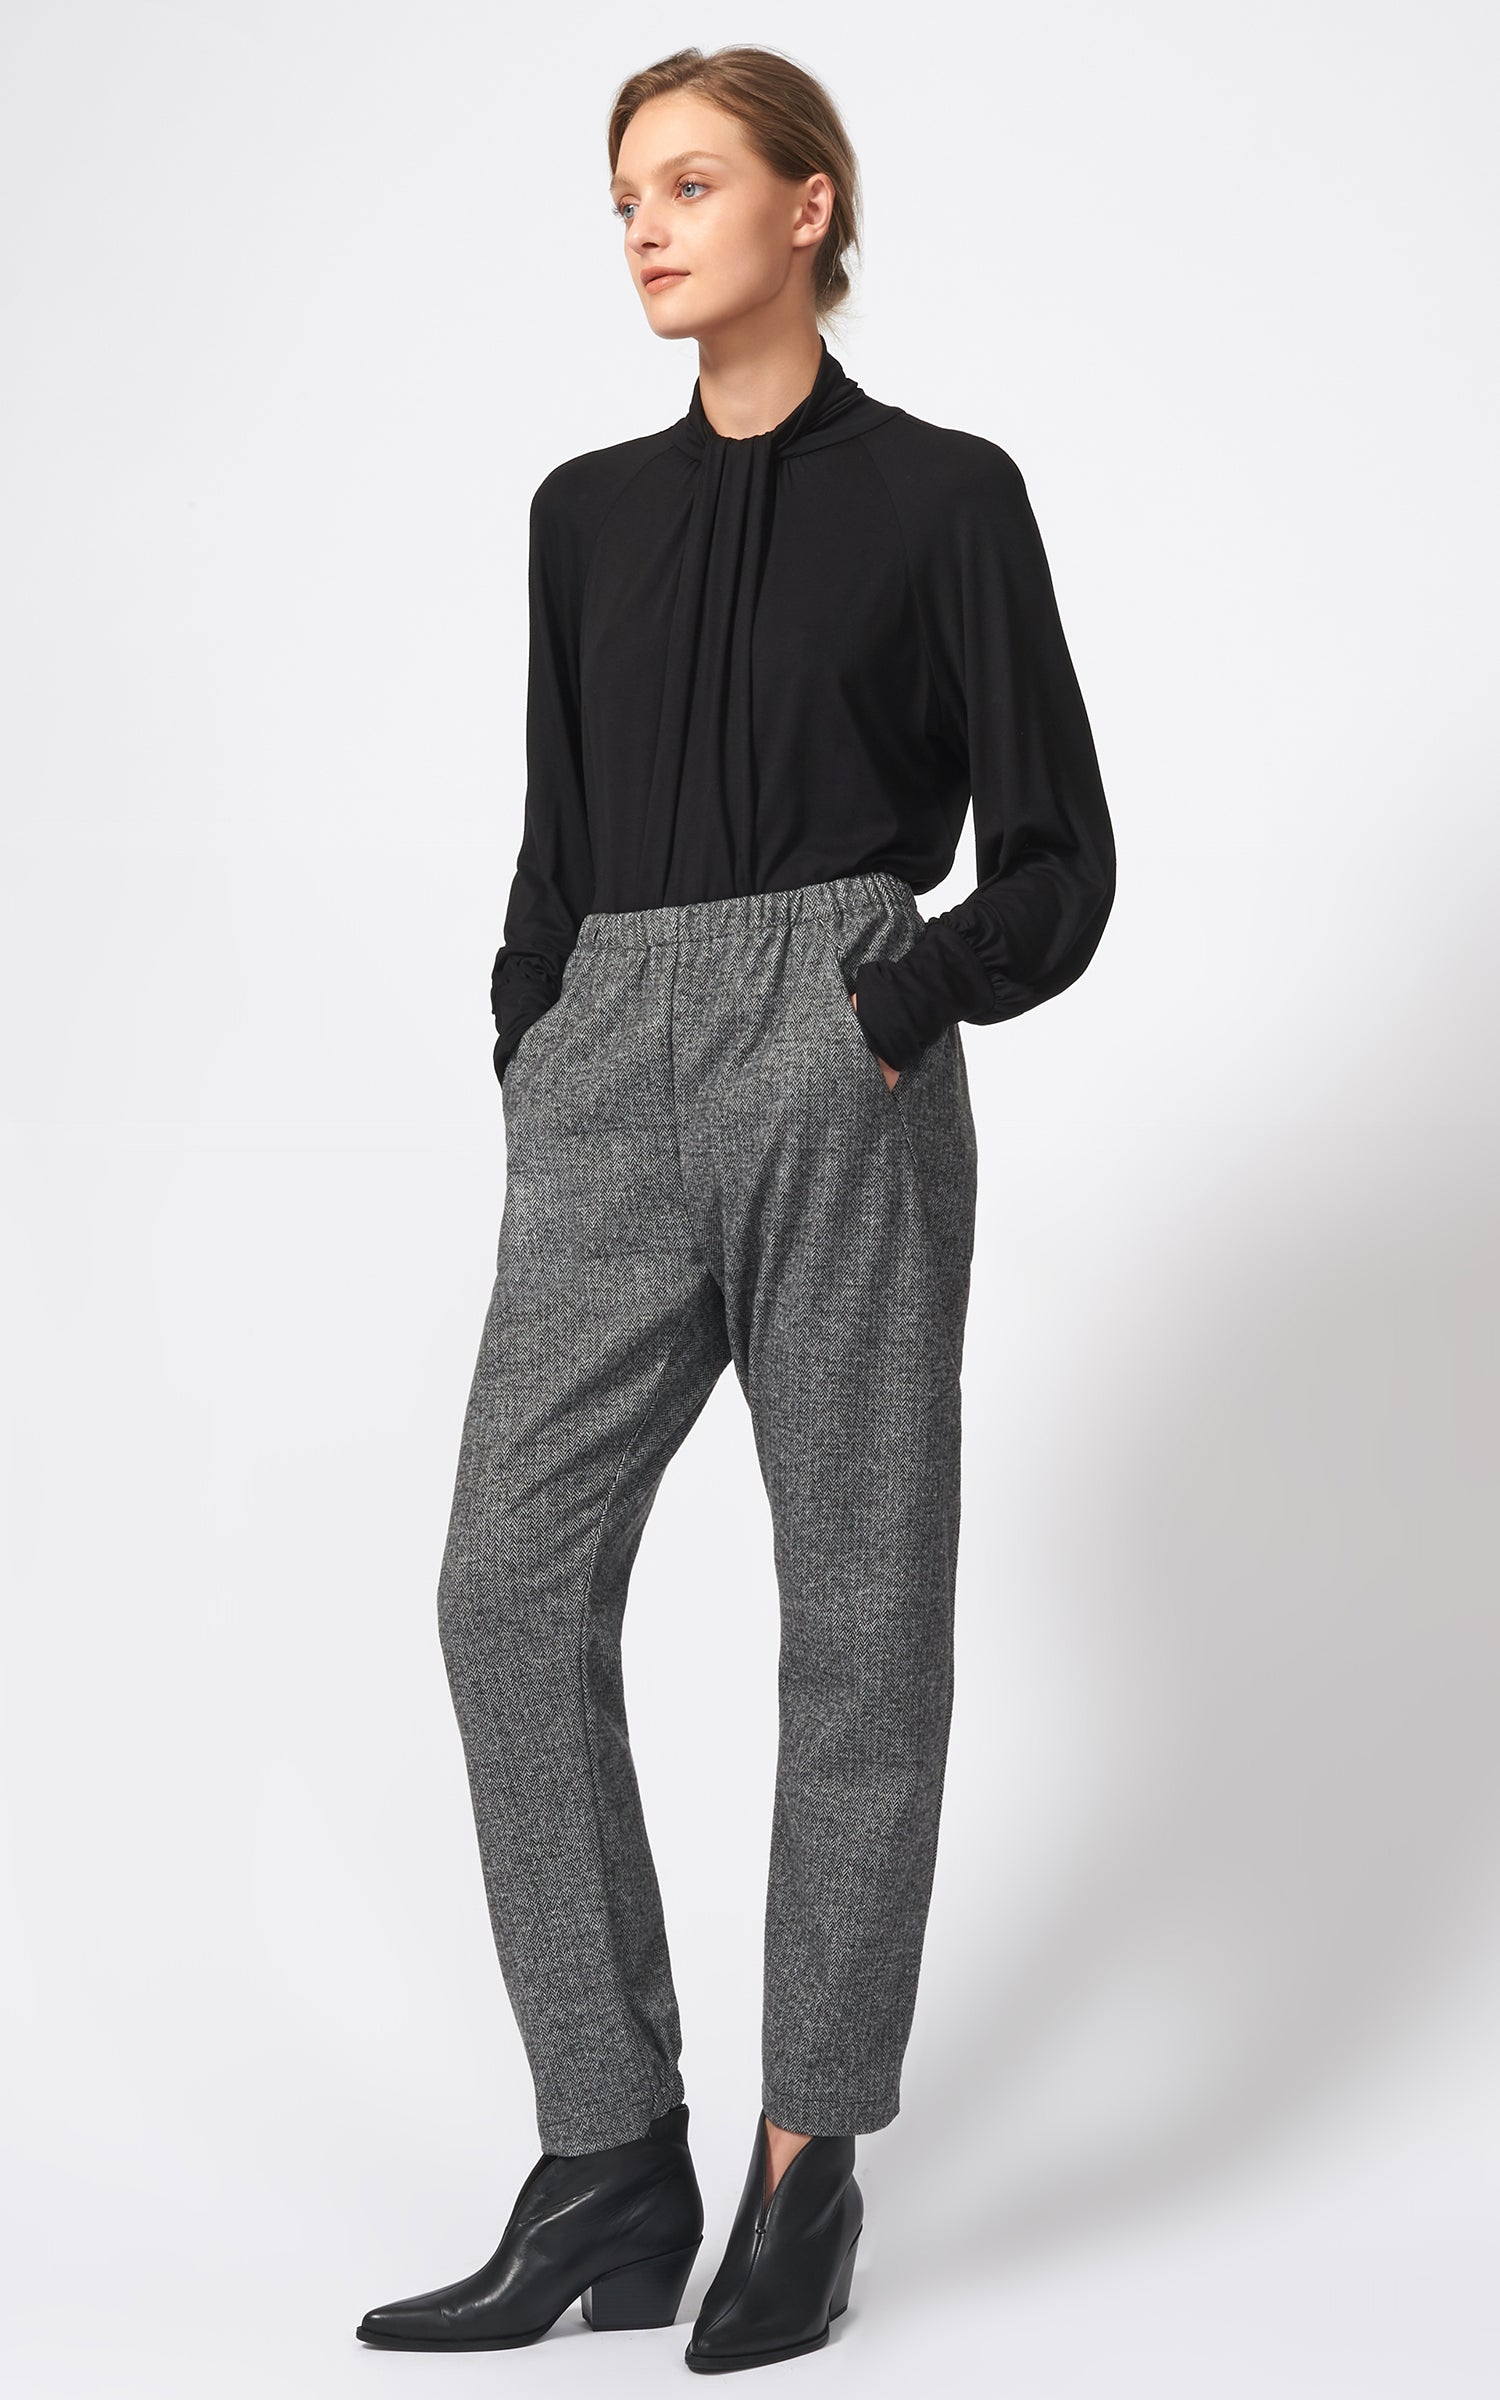 ANGLE SEAM TROUSER - BLACK CHEVRON